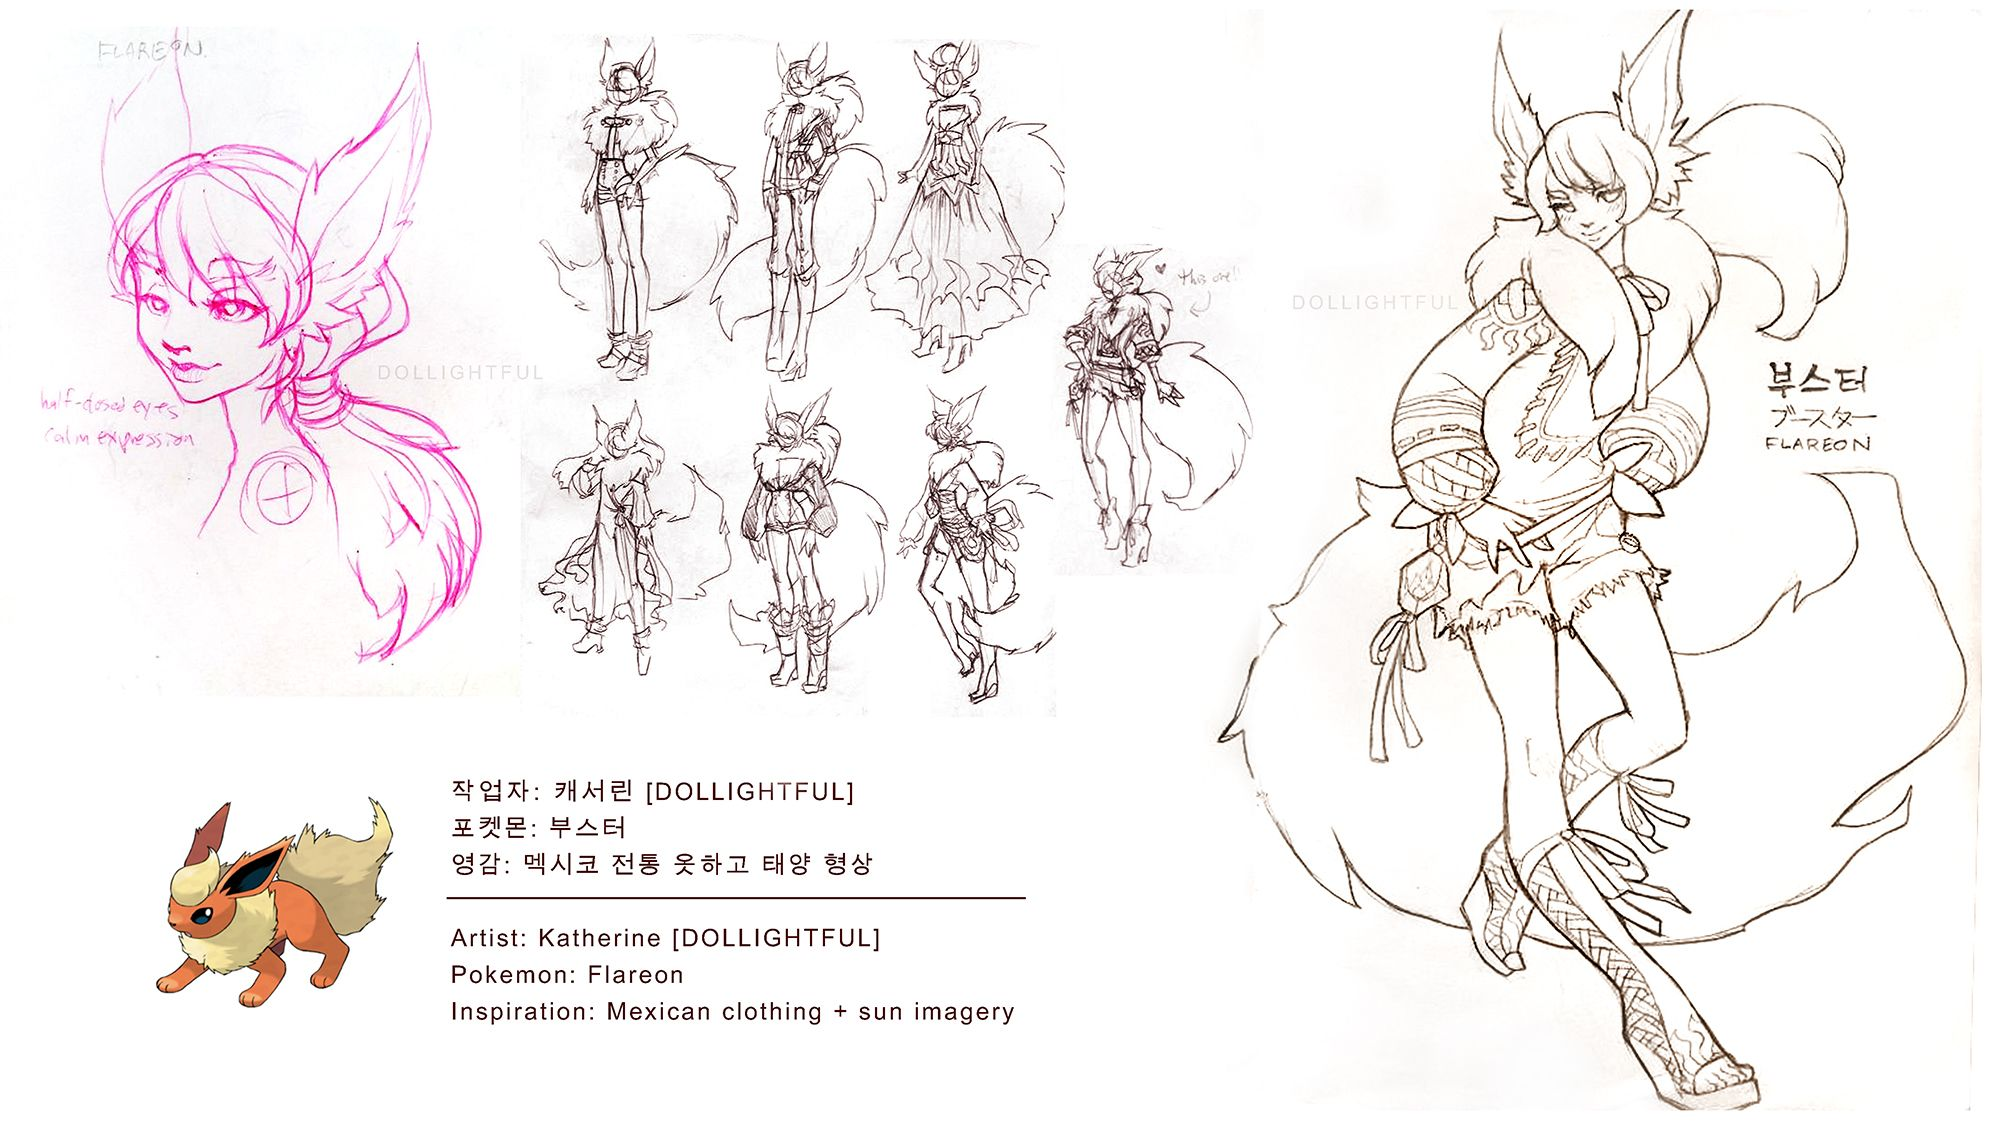 Flareon doll early concept sketches by dollightful inspired by mexican clothing